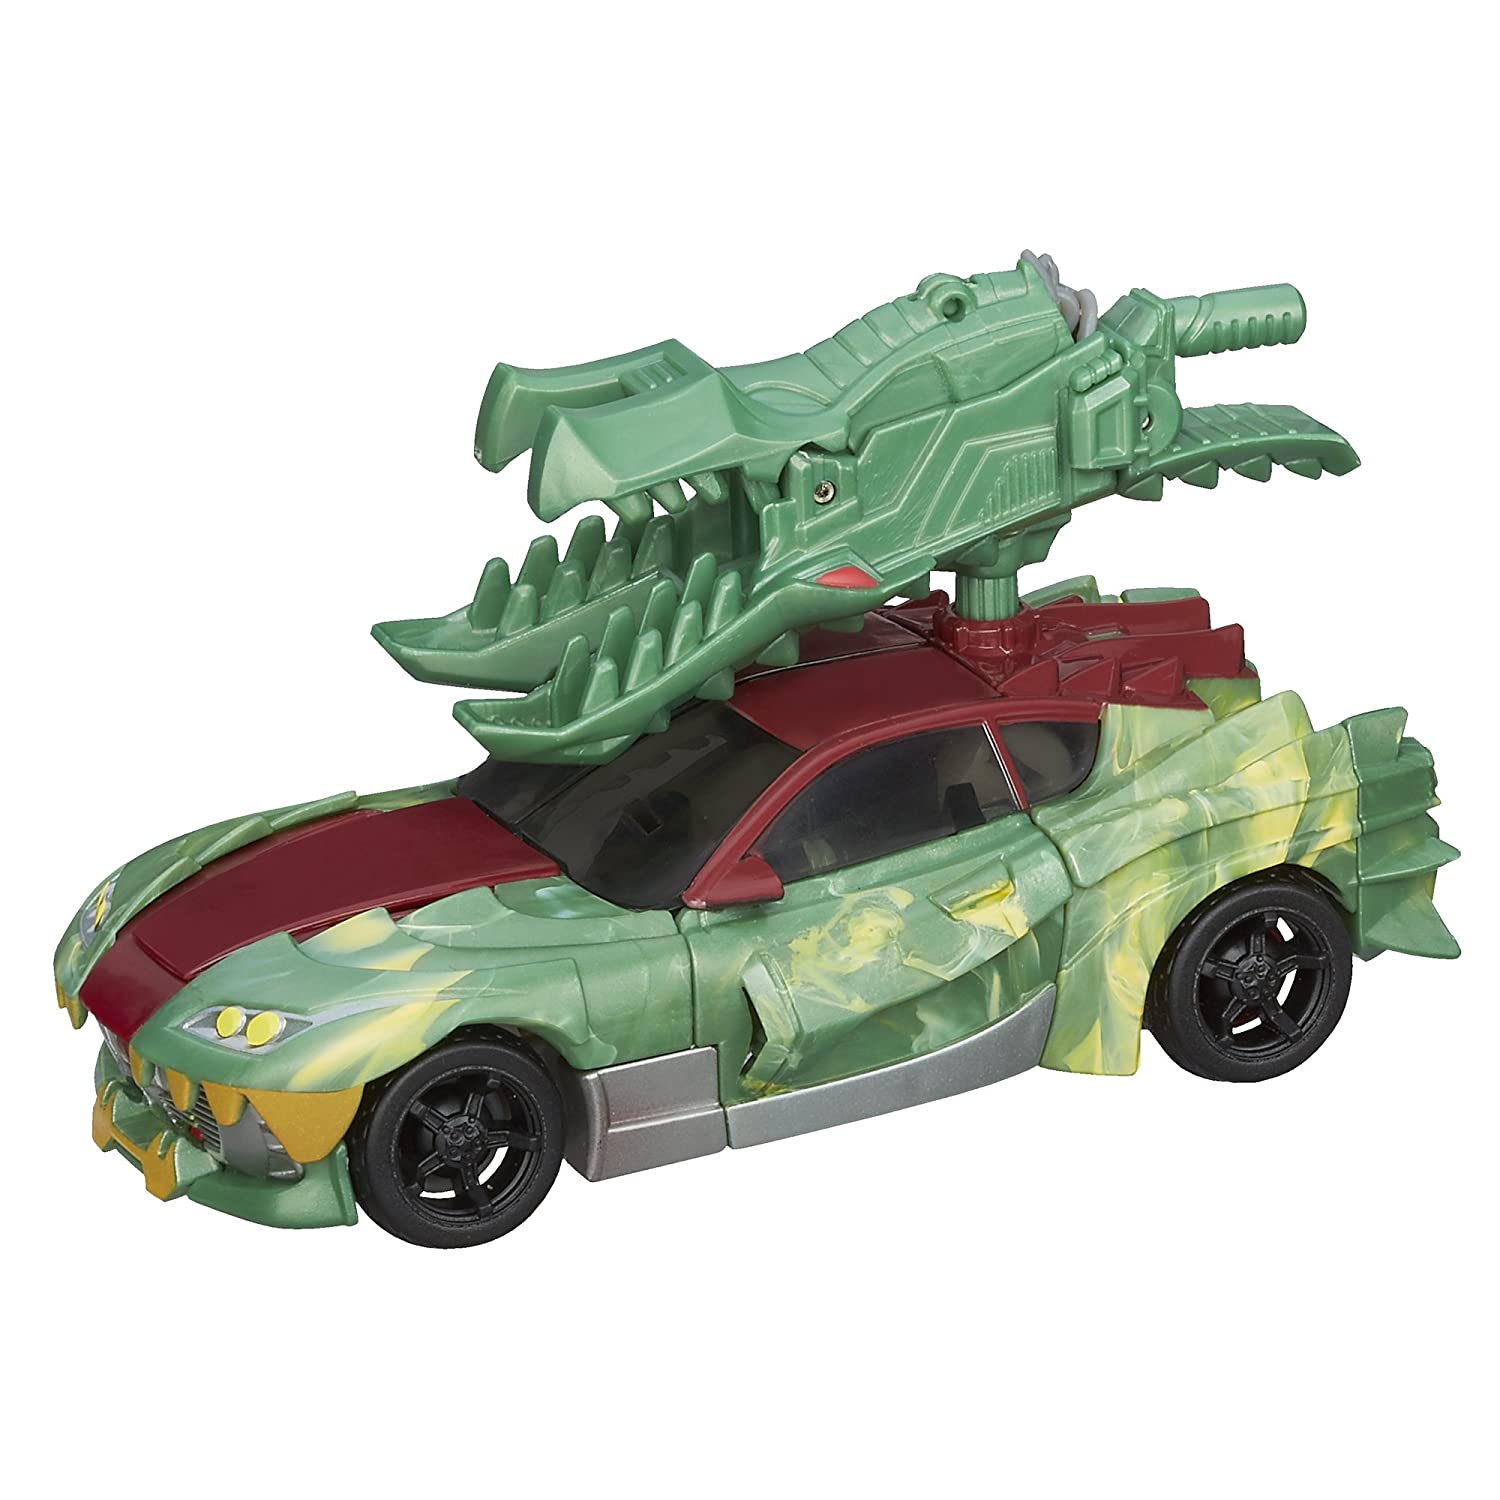 Transformers Prime Deluxe Class Knock Out Figure